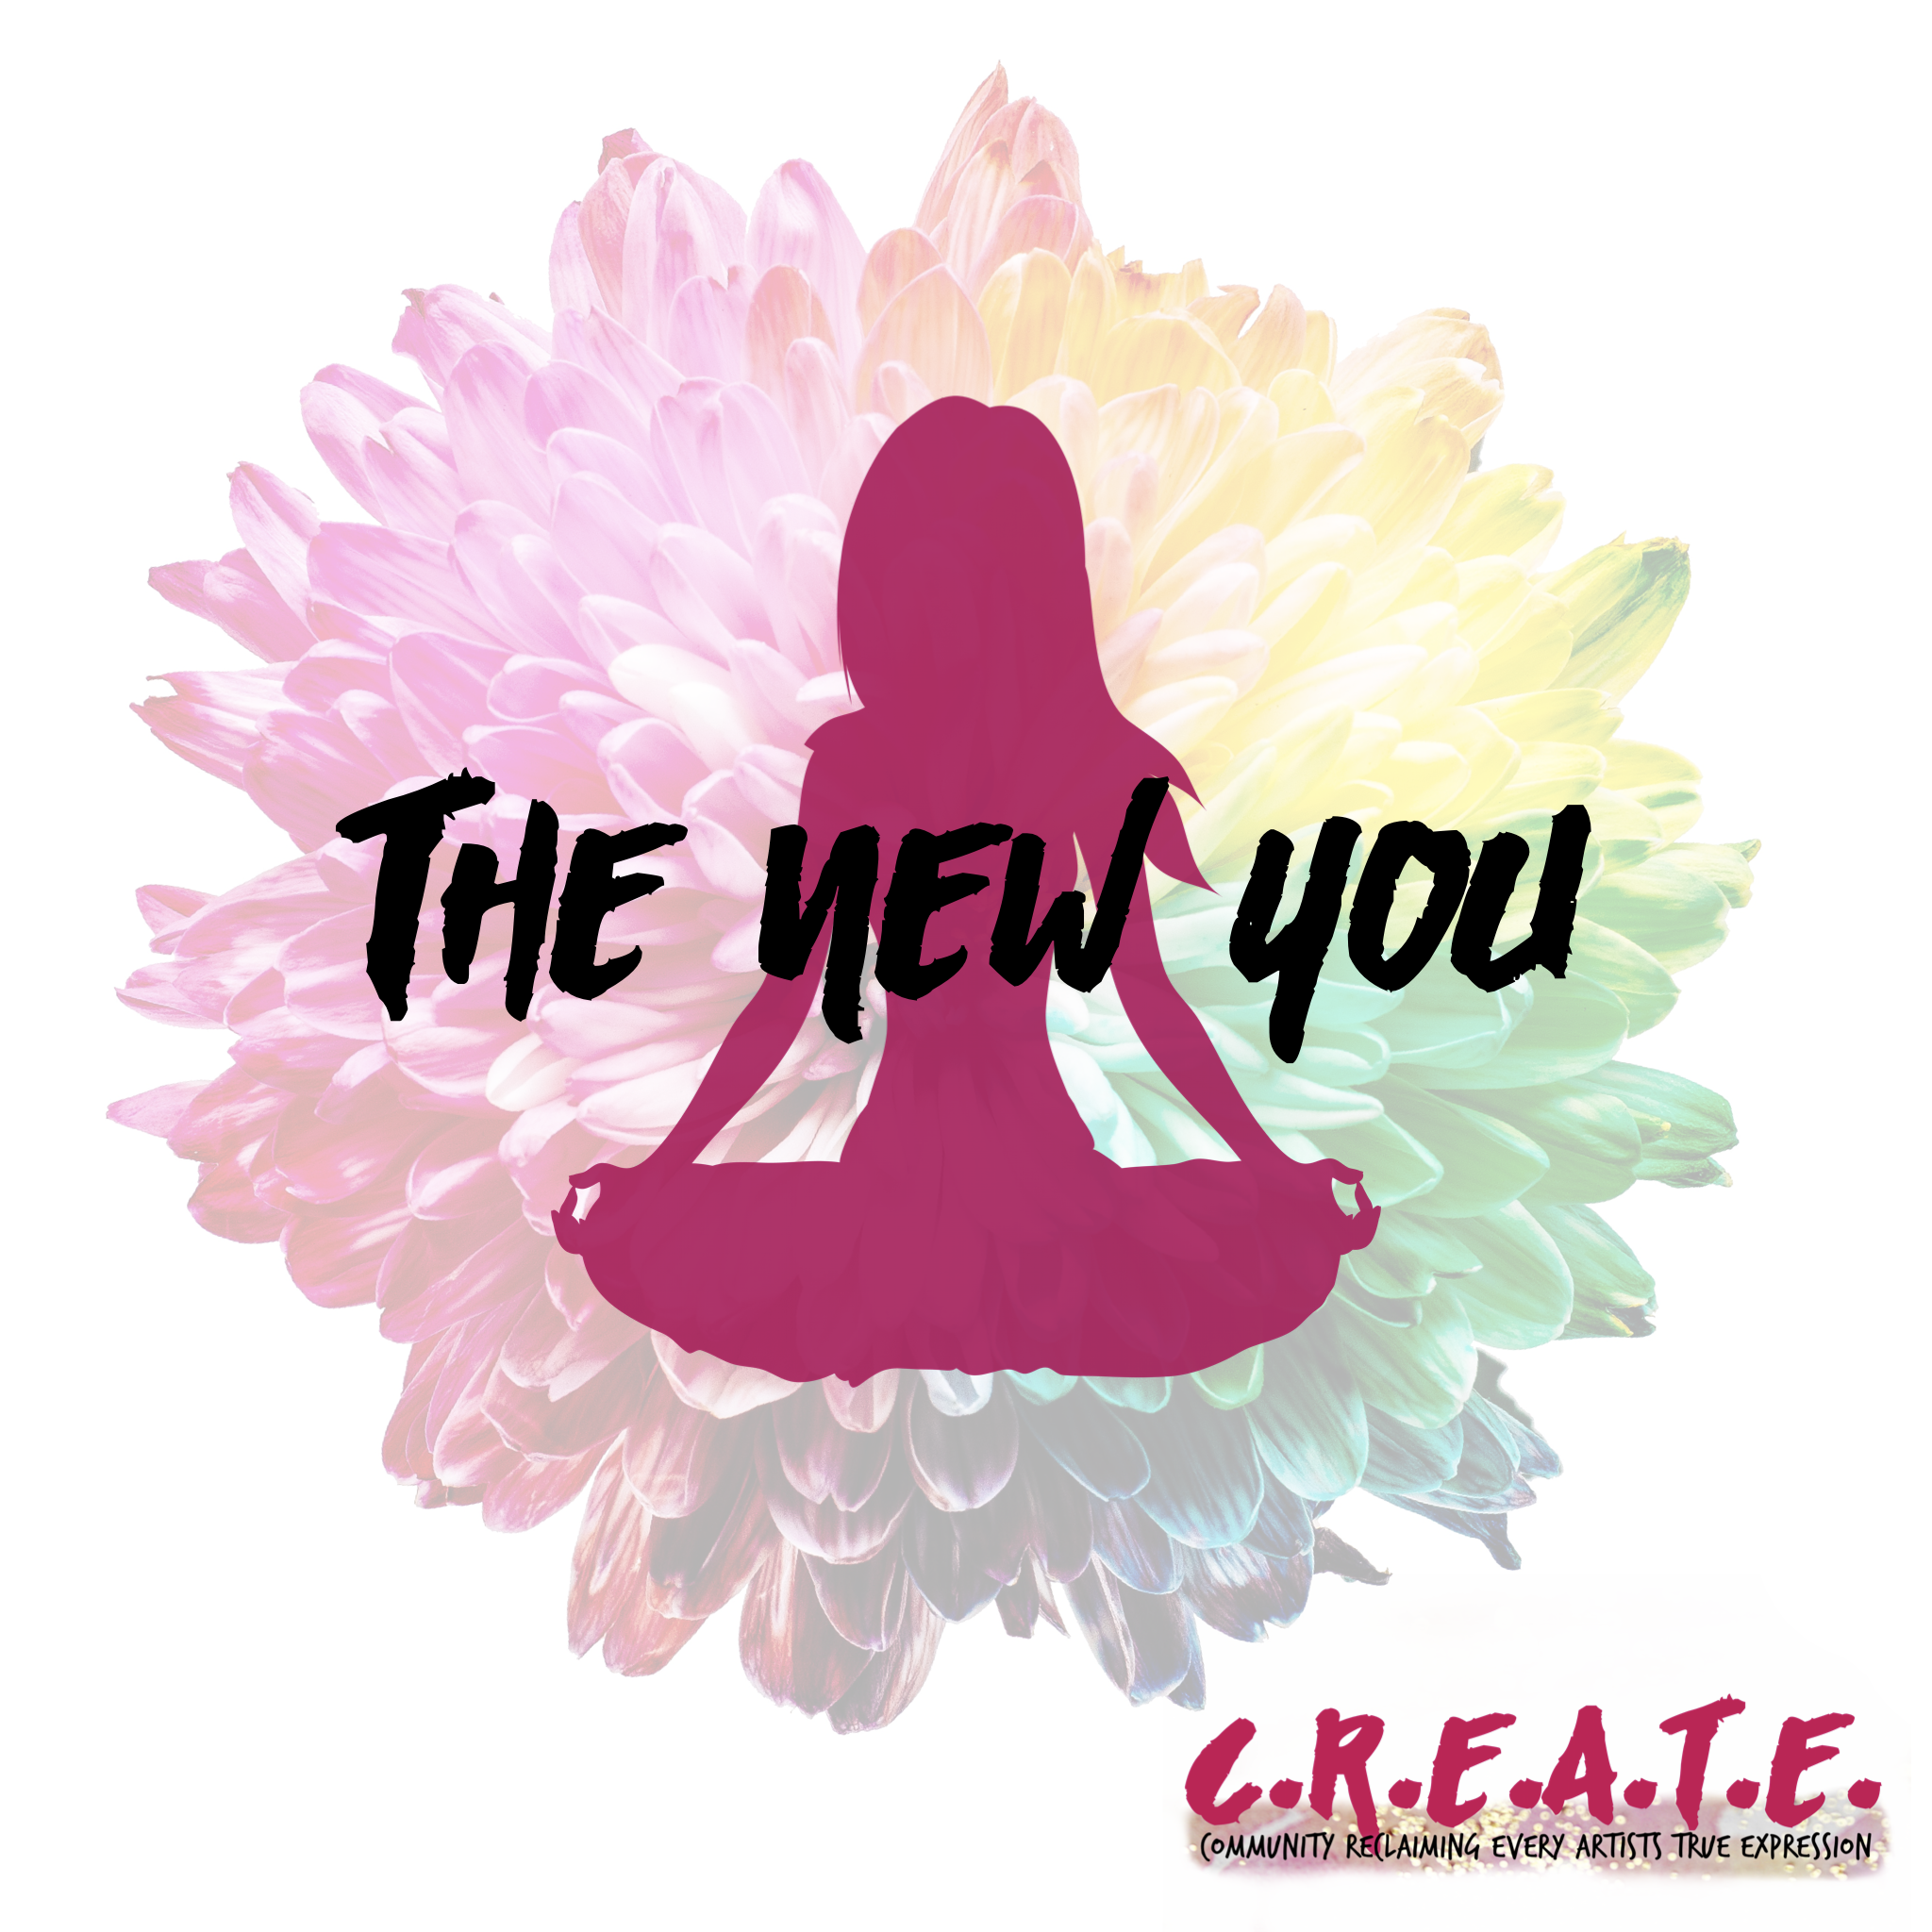 The New You - $1.99 - Click Image To Purchase!